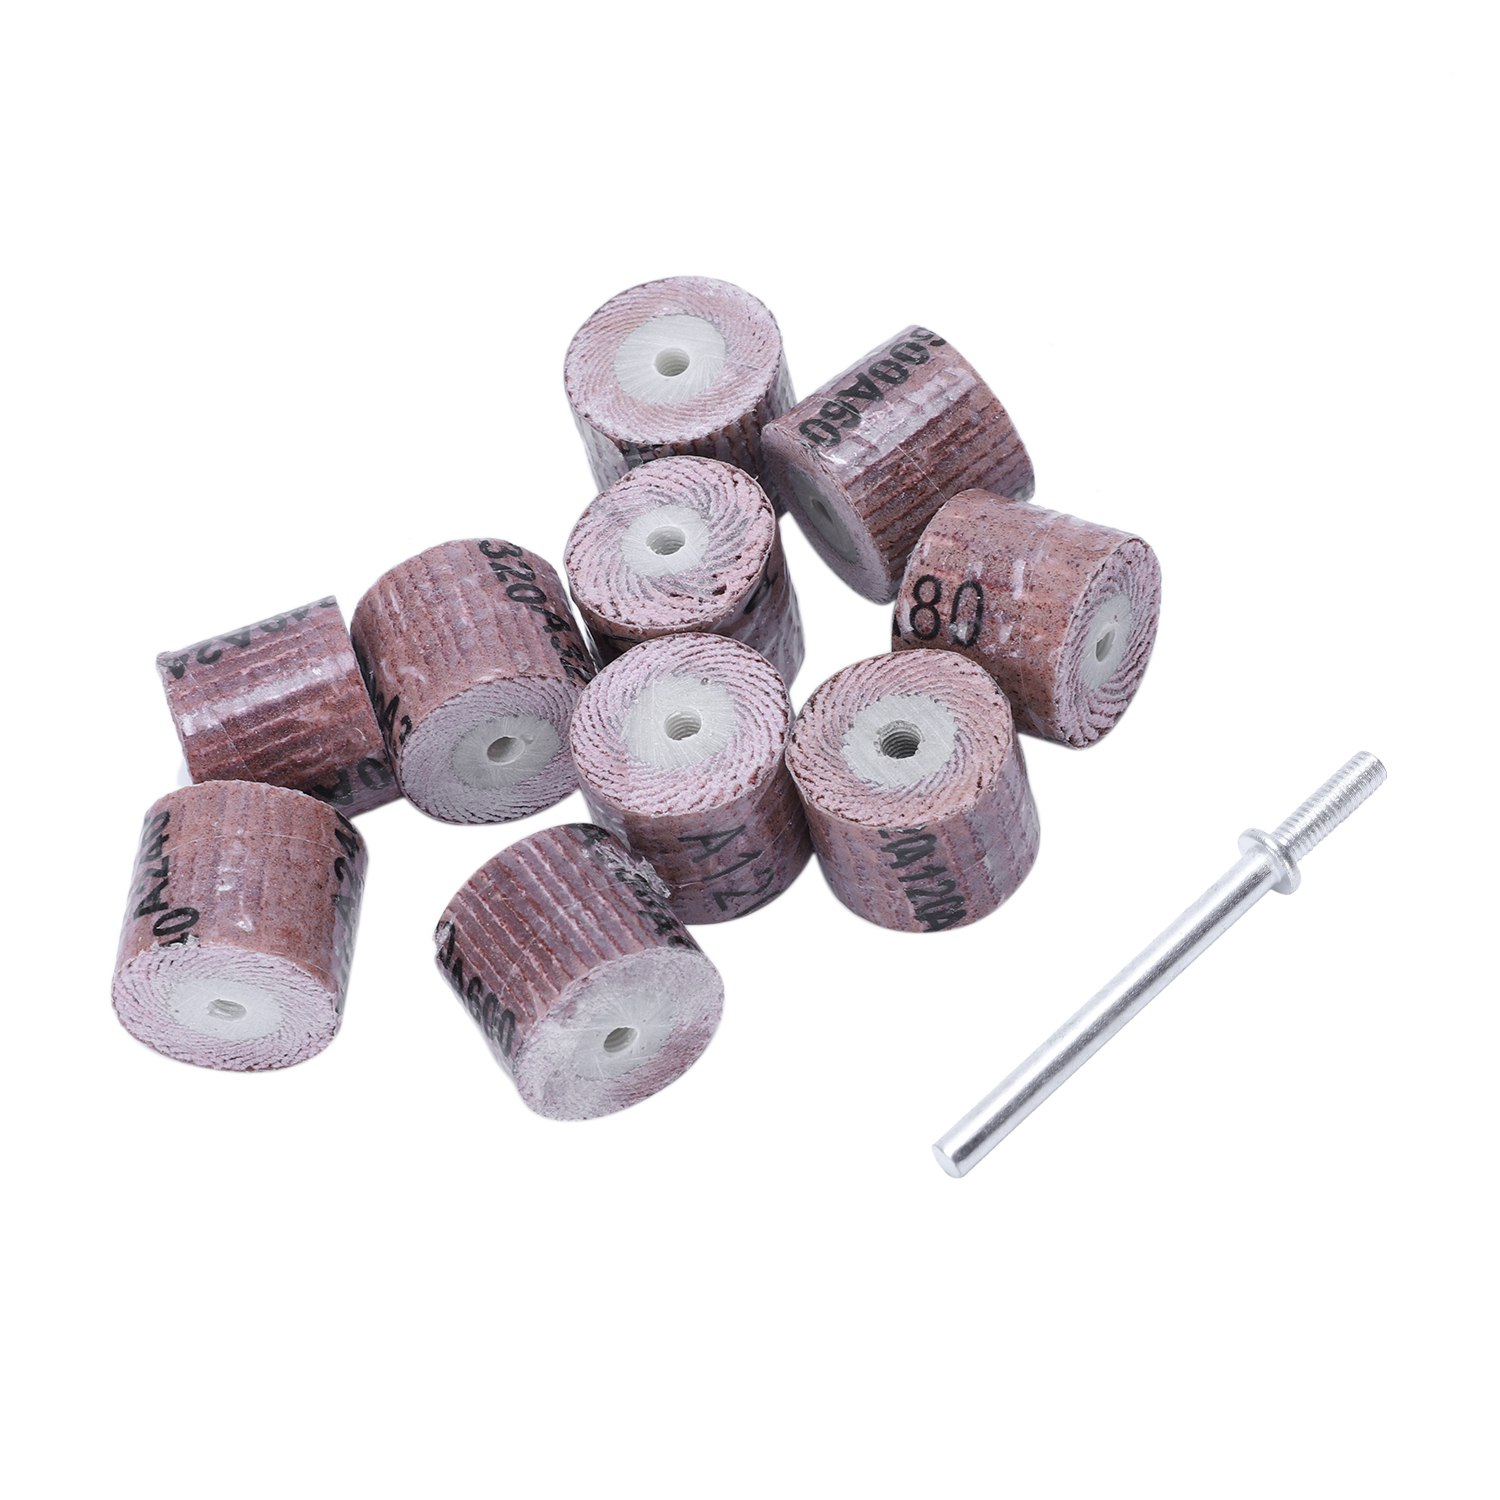 10Pcs 15Mm Sanding Band Wheel Disc 80/120/240/320/600 Grit Rotarytools For Dremel Rotary Mini Drill Polish Tool